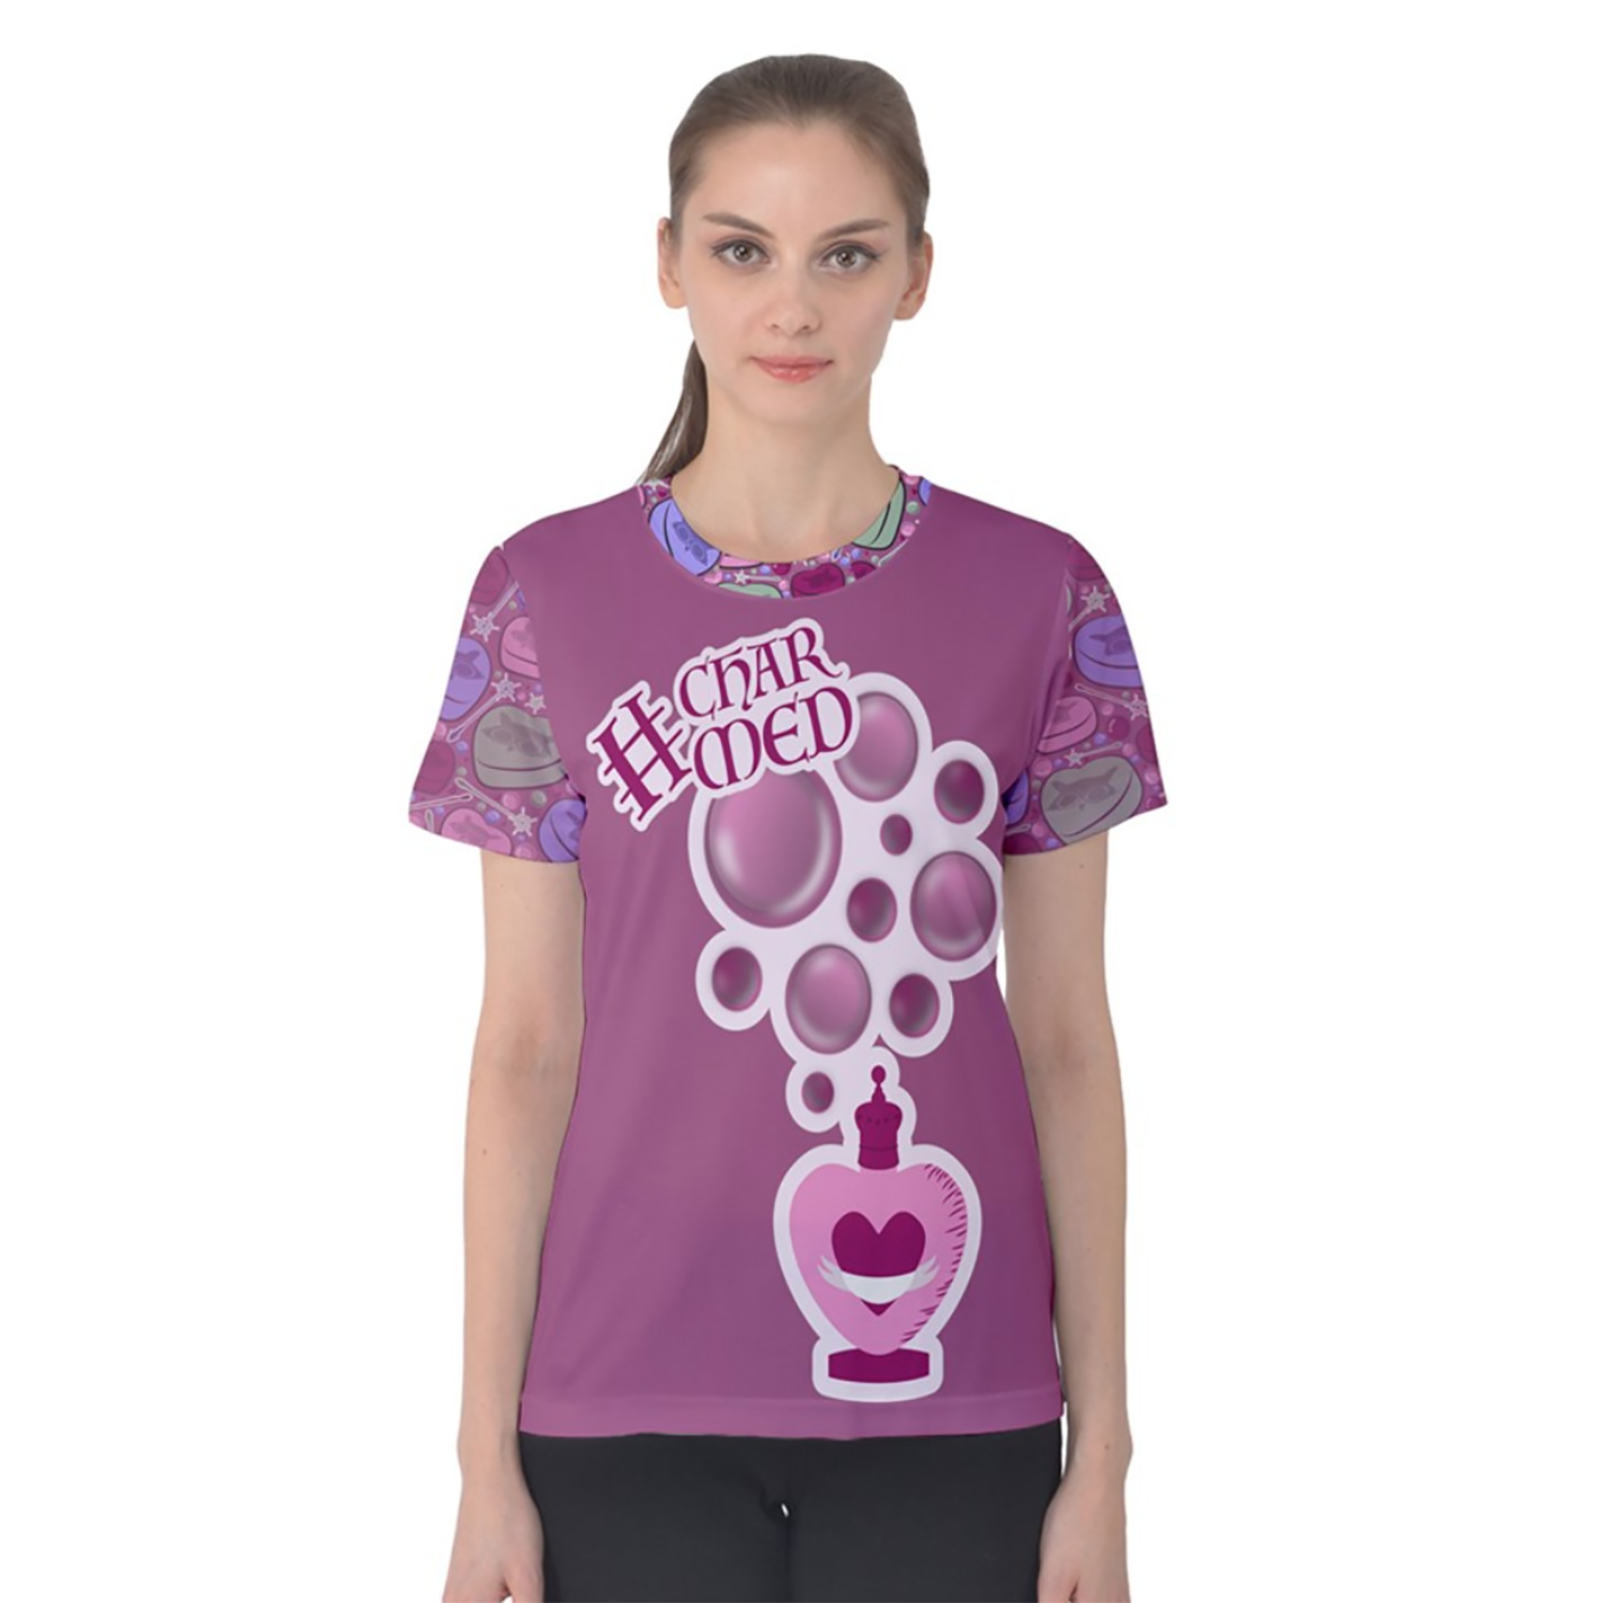 Charmed Women's Cotton Tee (Pink Solid Body)